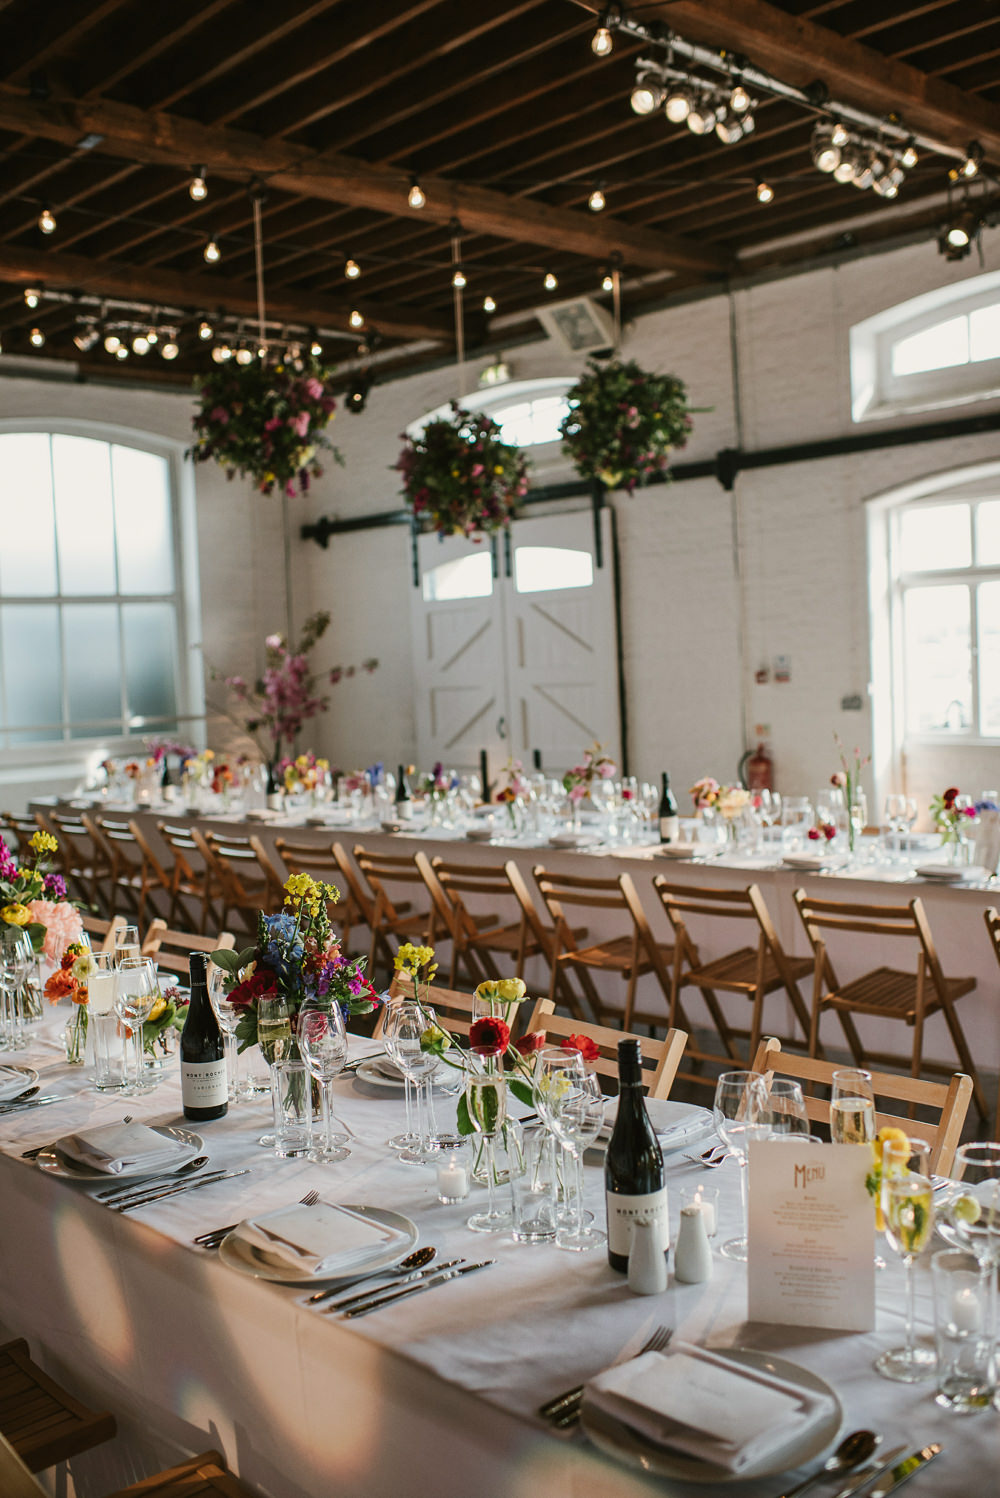 Ceiling Hanging Suspended Flowers Decor Spring Coral Peony Natural Wild Colourful Long Tables Riverside London Wedding Ellie Gillard Photography